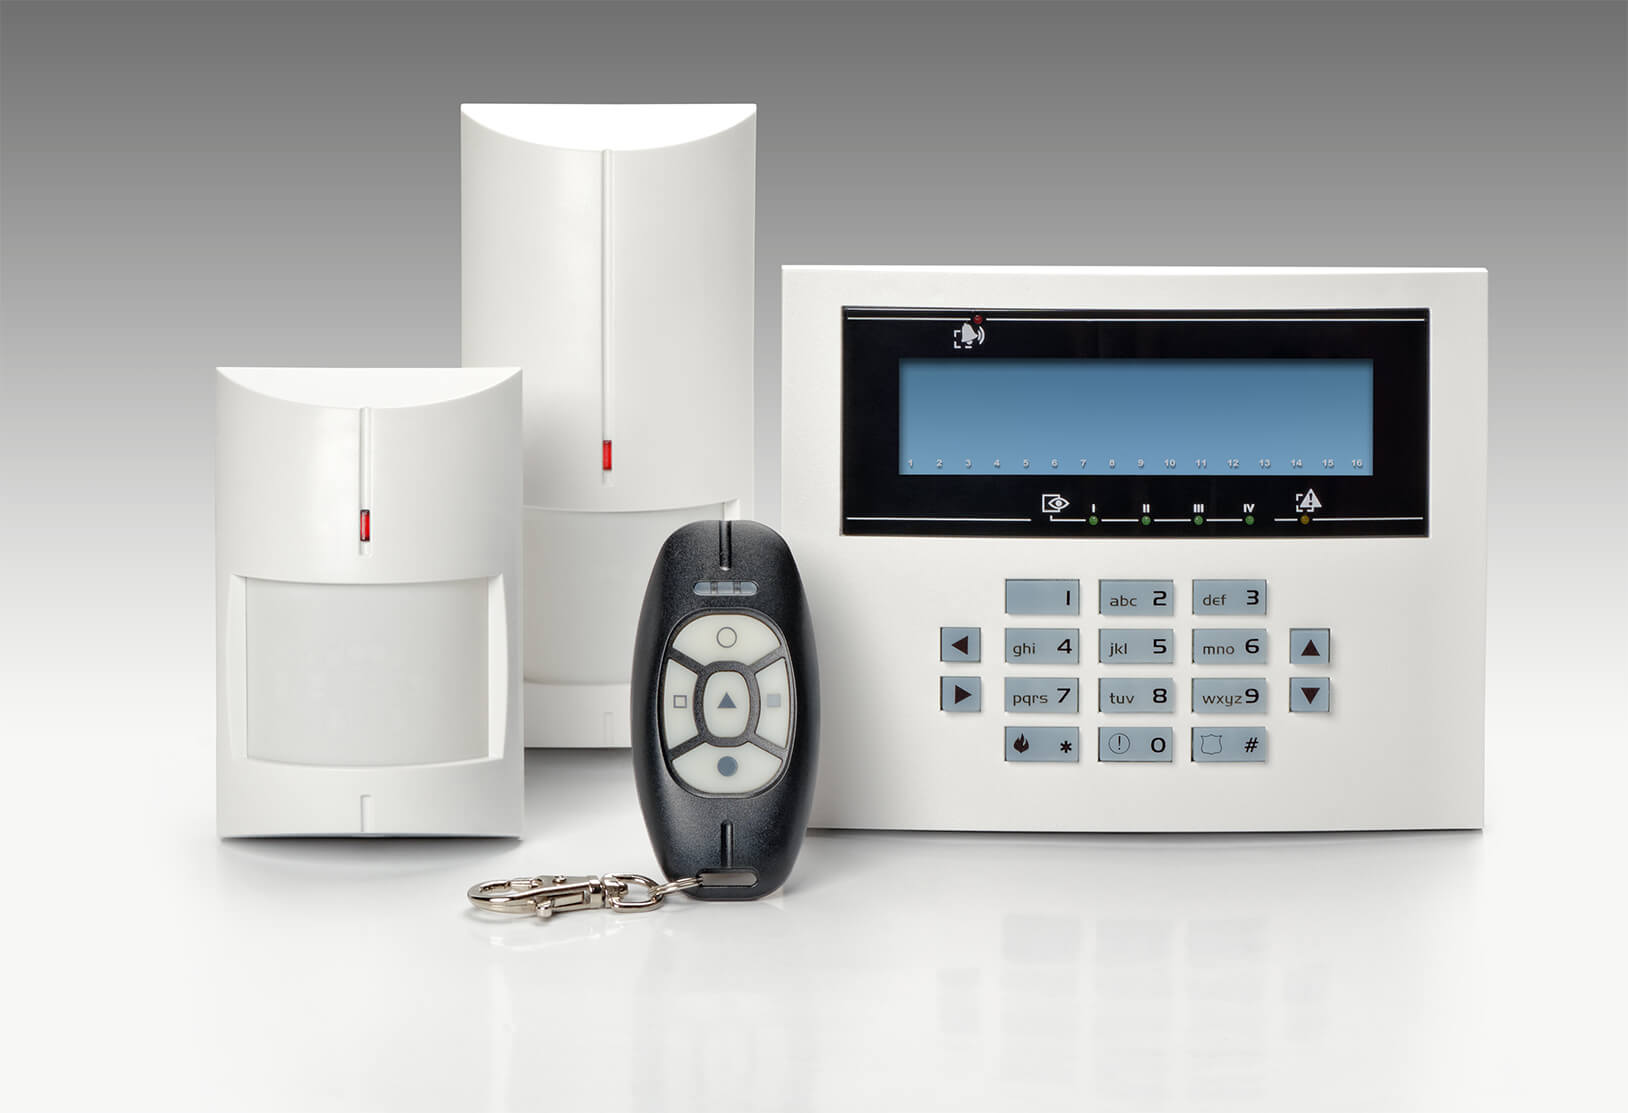 Commercial Burglar Alarms For Business in Greenwich SE18  - Local Greenwich SE18 burglar alarm company.Call 02078872244 - Dedicated to Safety & Security. Companies, shops and homes ..